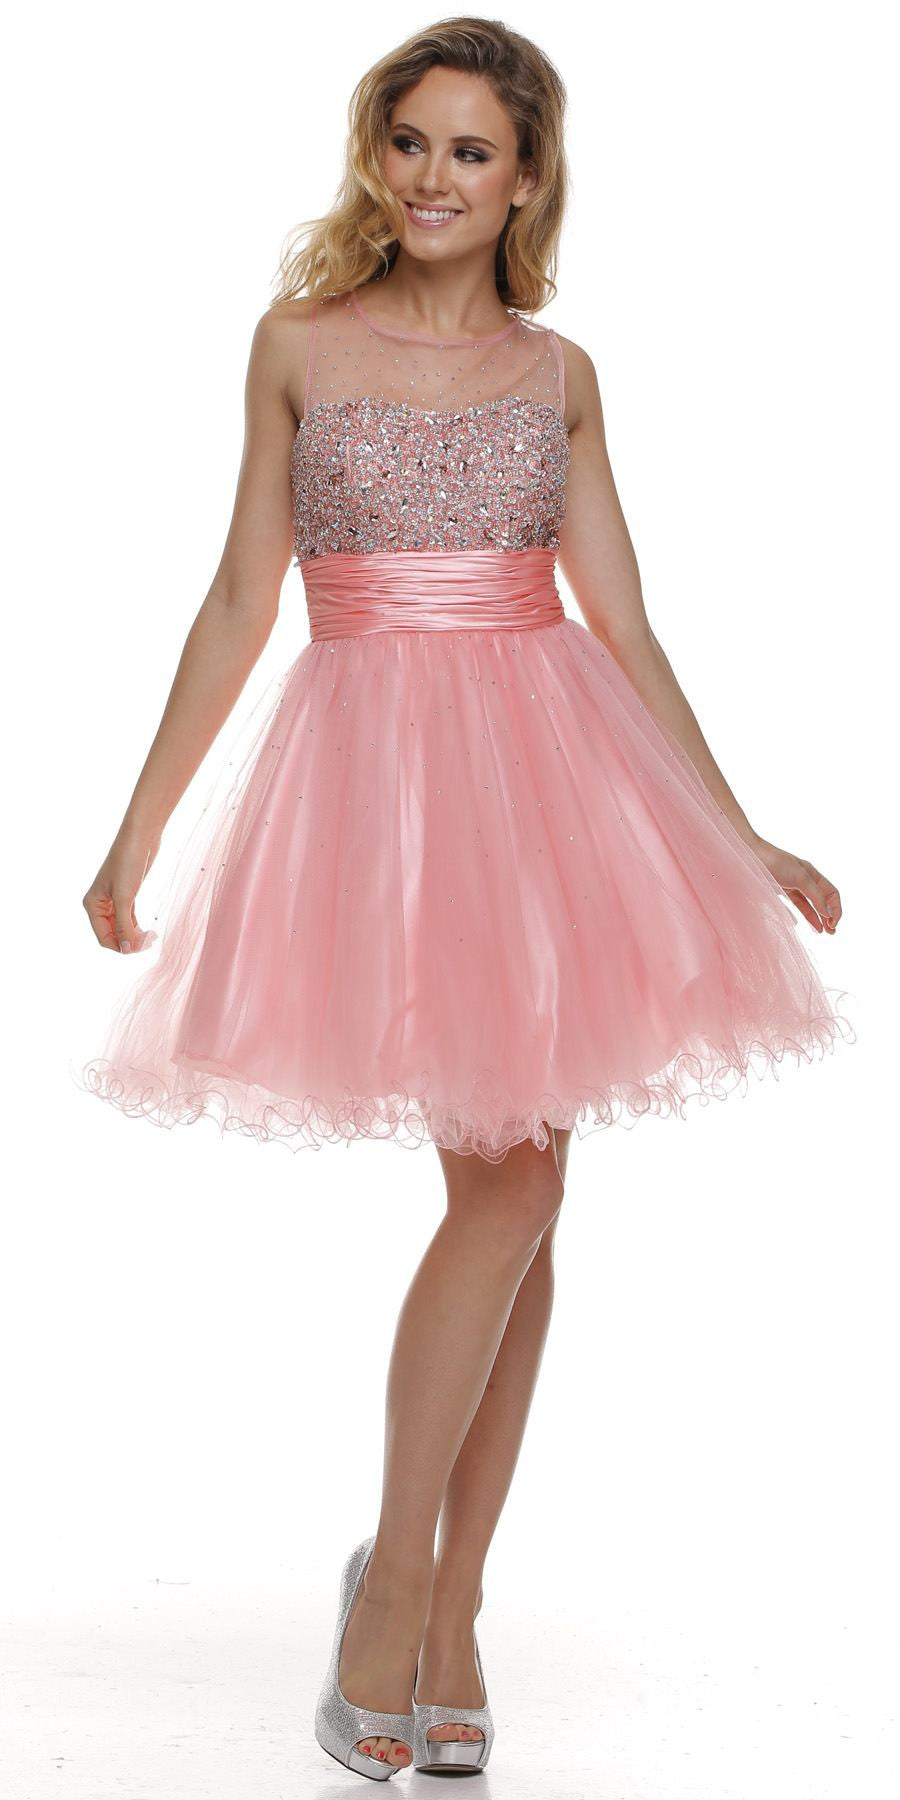 37cec0082186 Ruched Empire Waist Illusion Neck Puffy Blush Prom Dress. Tap to expand